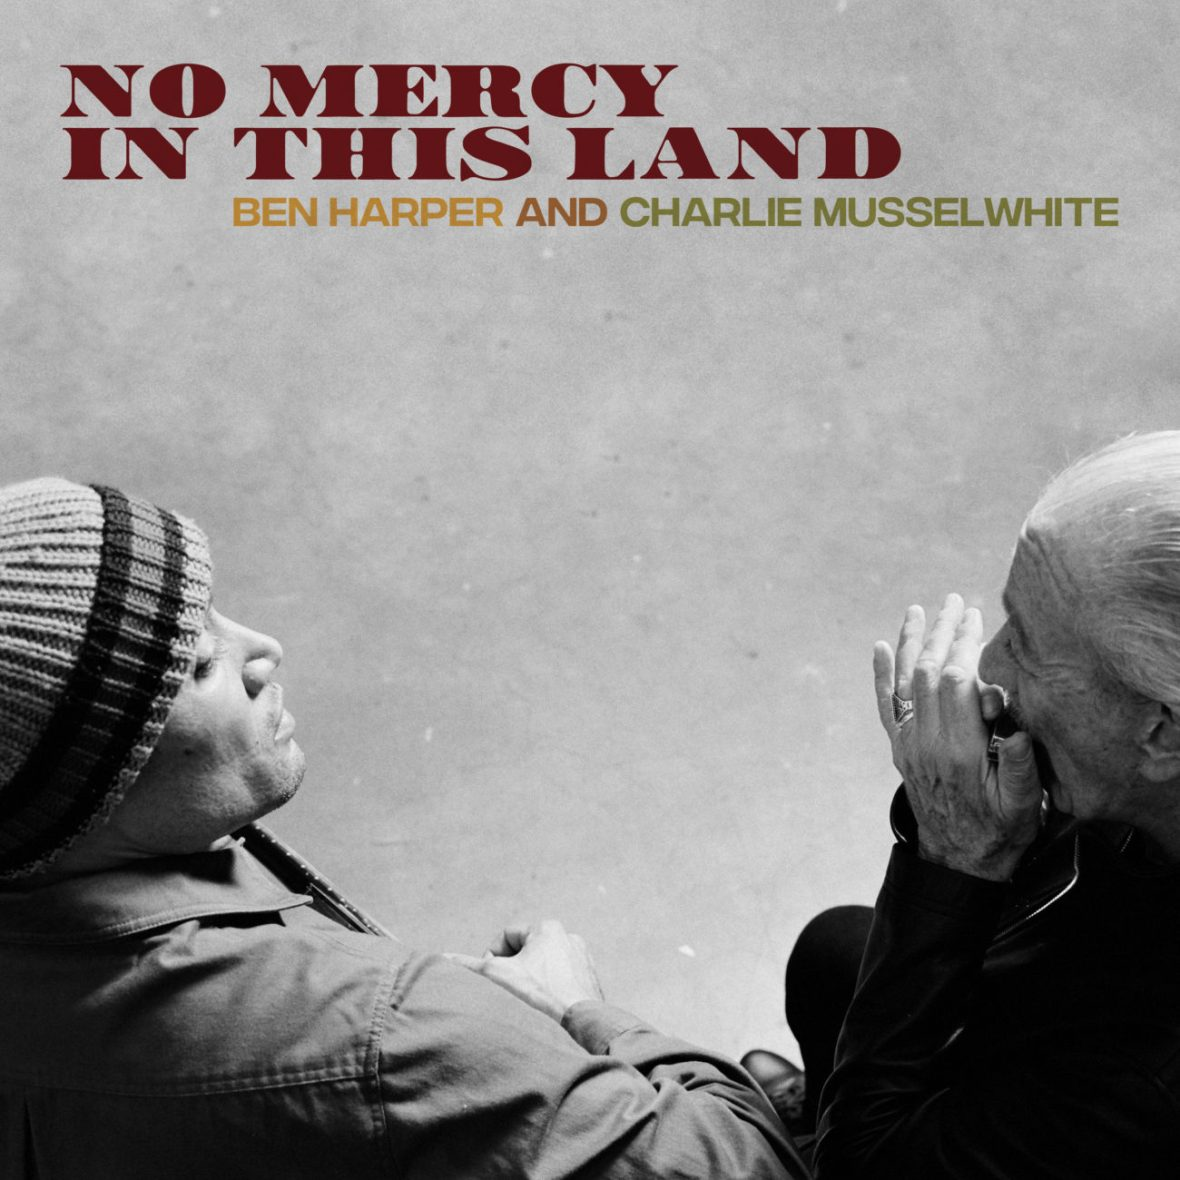 Ben Harper & Charlie Musselwhite - No Mercy In This Land